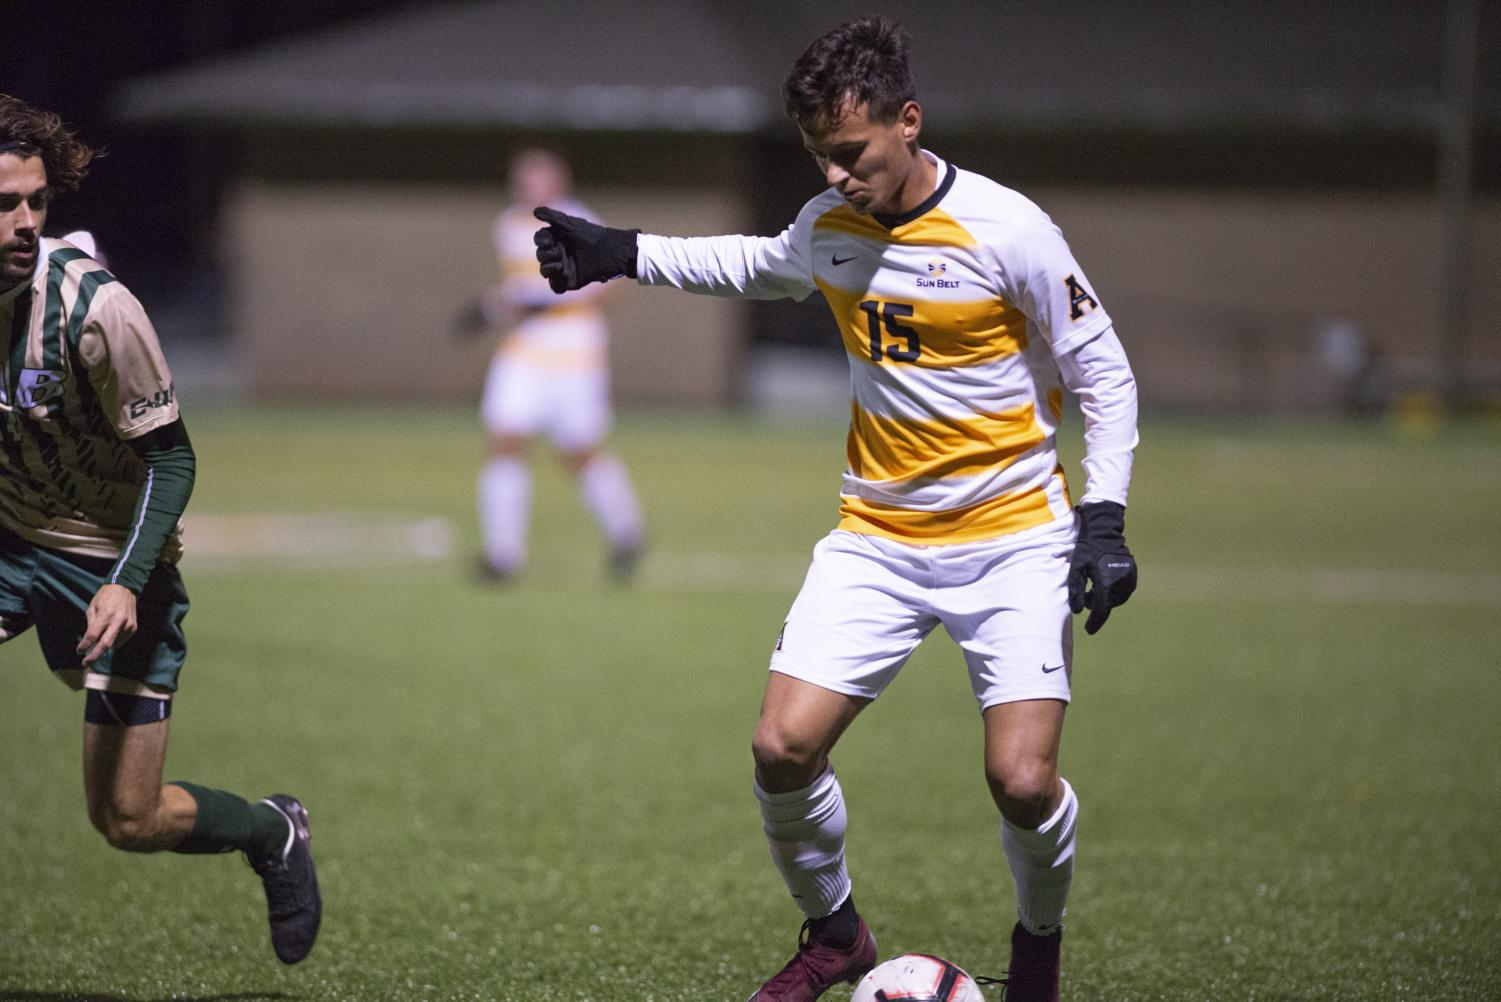 Sophomore midfielder Dimitris Moraitakis dribbles the ball during App State's 4-2 loss to Coastal Carolina on Oct. 19. Moraitakis has goal and has started 10 games this year.